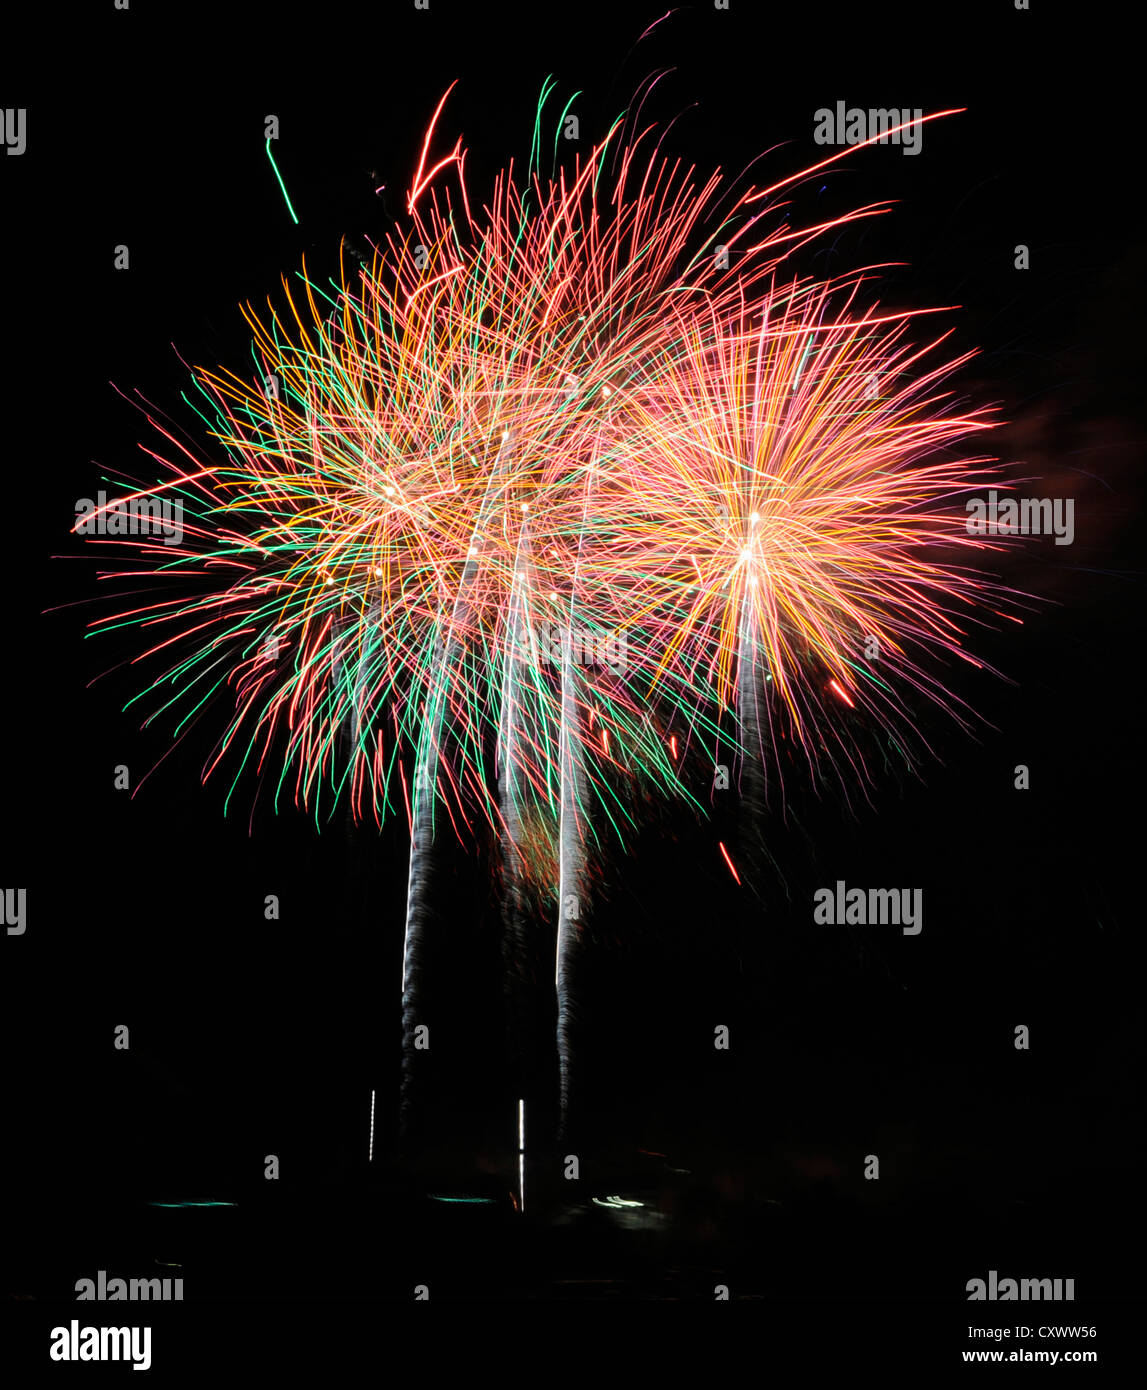 Fireworks display - Stock Image